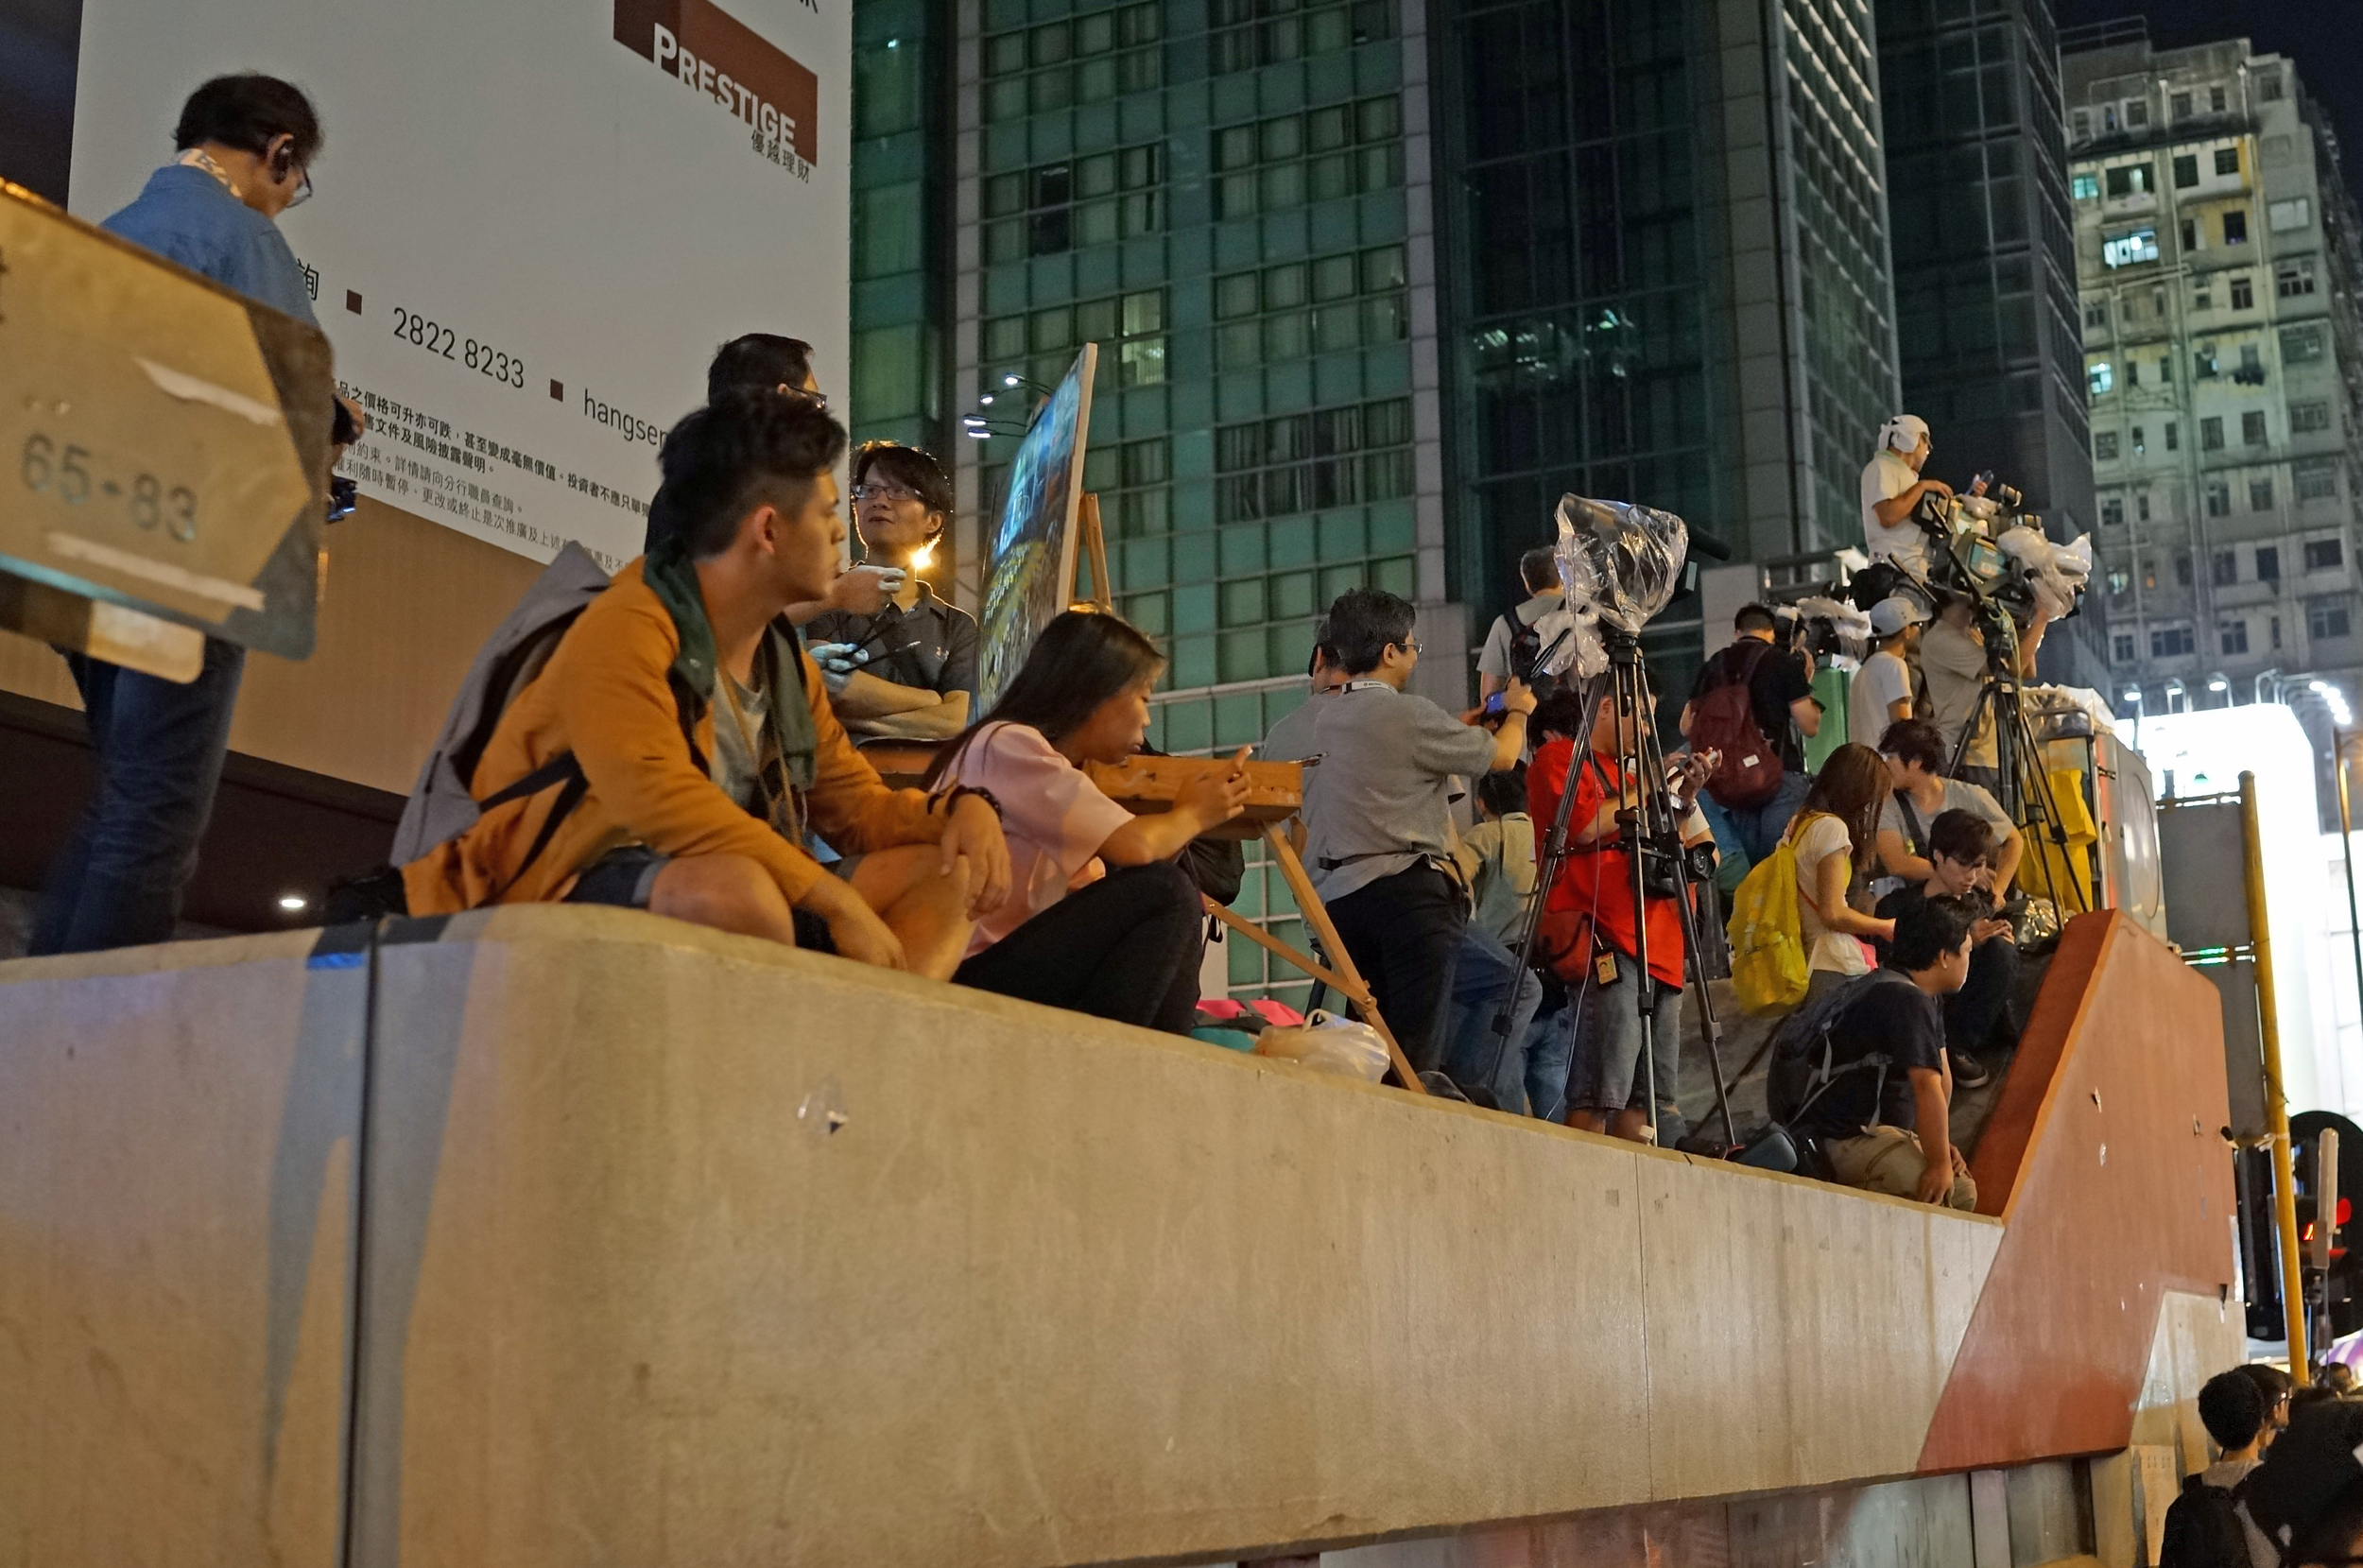 Mong Kok street protests - it never seems to occur to anyone that the constant press reporting + the fact that everyone has a camera phone means that the protesters deliberately provoke the Police into action so that they can claim Police brutality - these are not peaceful protesters they are thugs trying to discredit the Police.